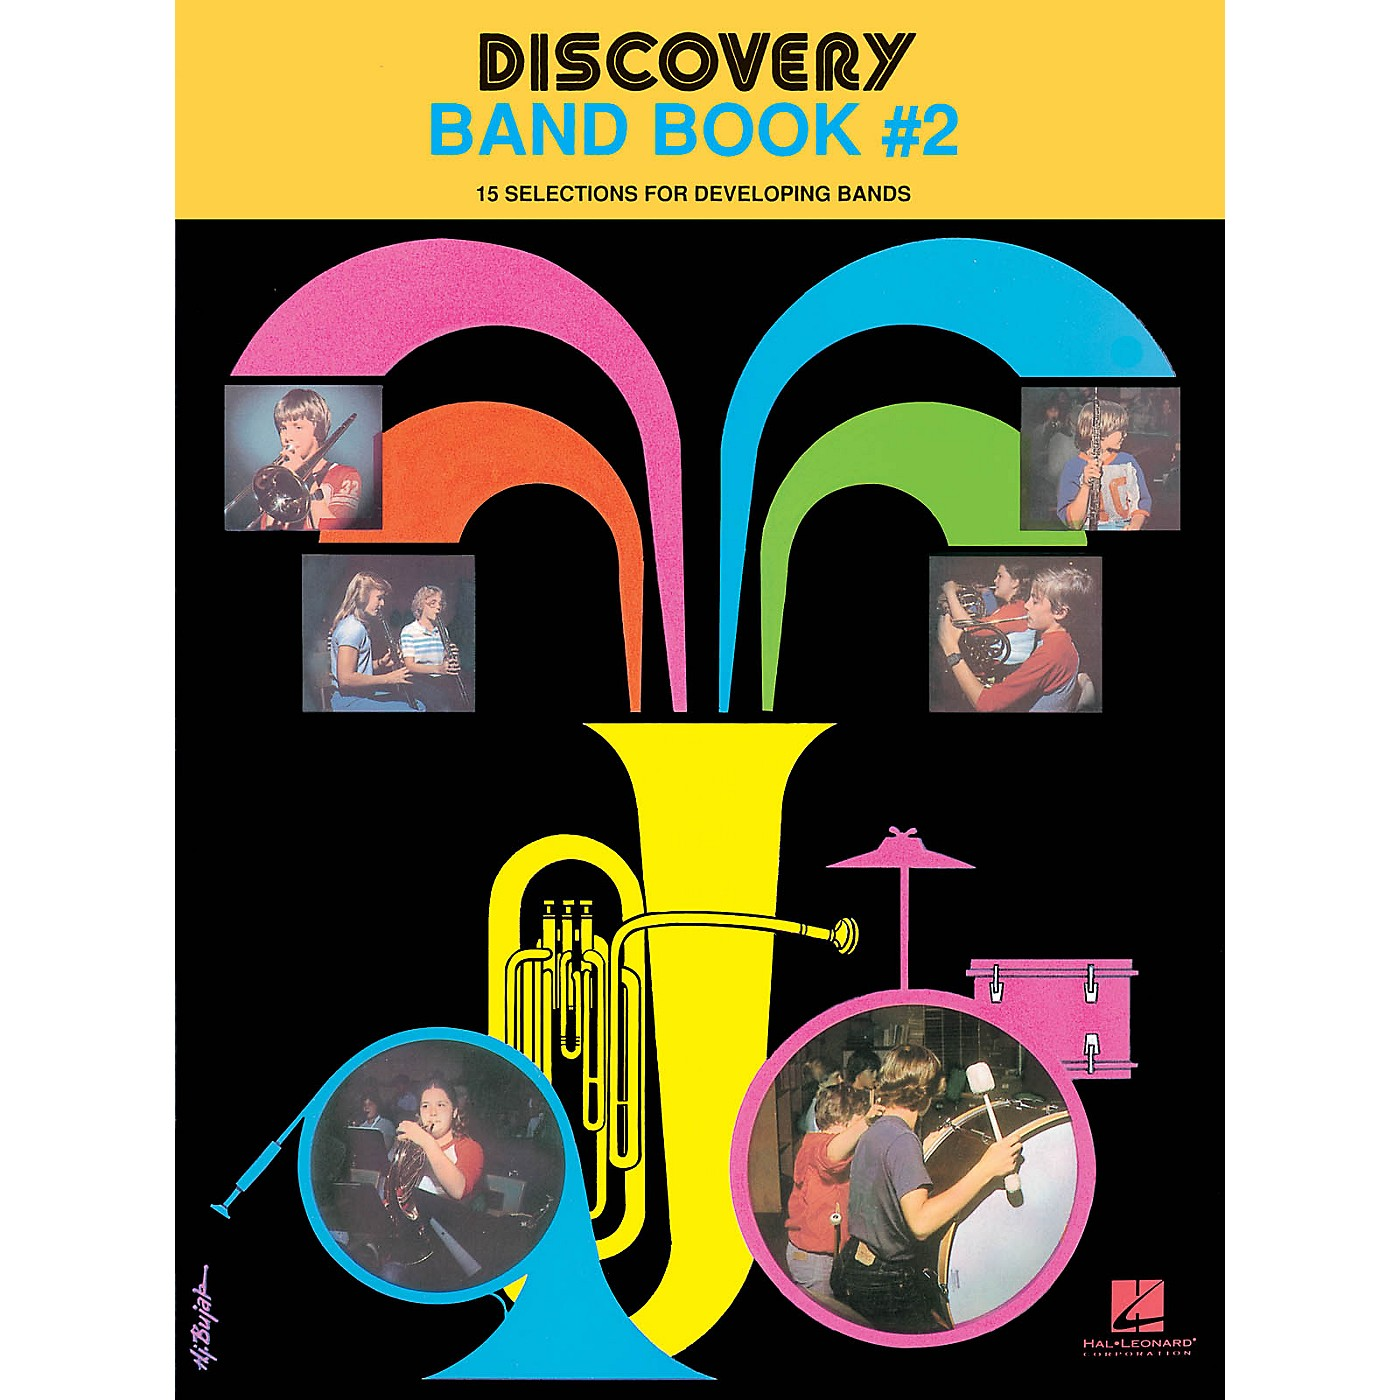 Hal Leonard Discovery Band Book #2 (E Flat Alto Saxophone) Concert Band Level 1 Composed by Anne McGinty thumbnail